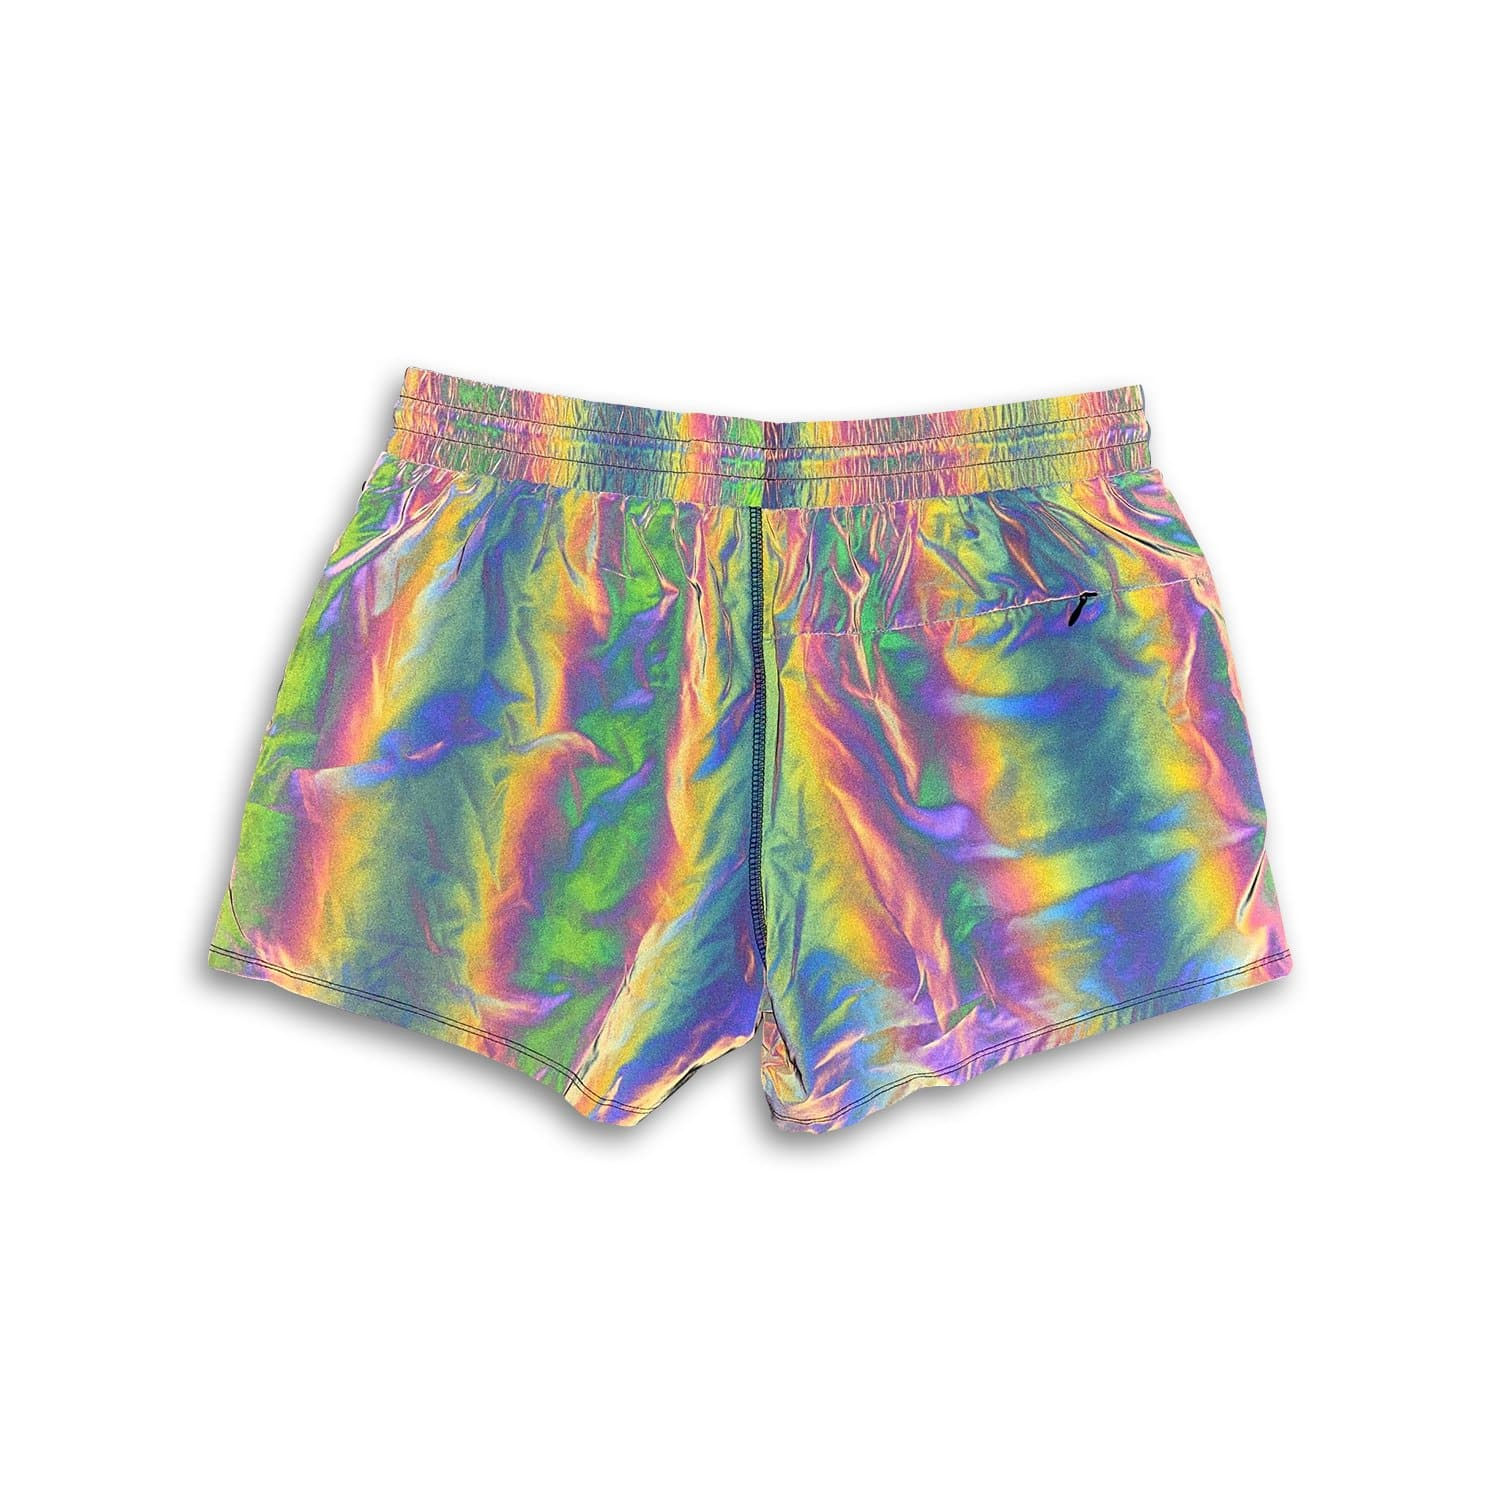 Men's Active Liner Shorts 2.0 - Rainbow REFLECTIVE